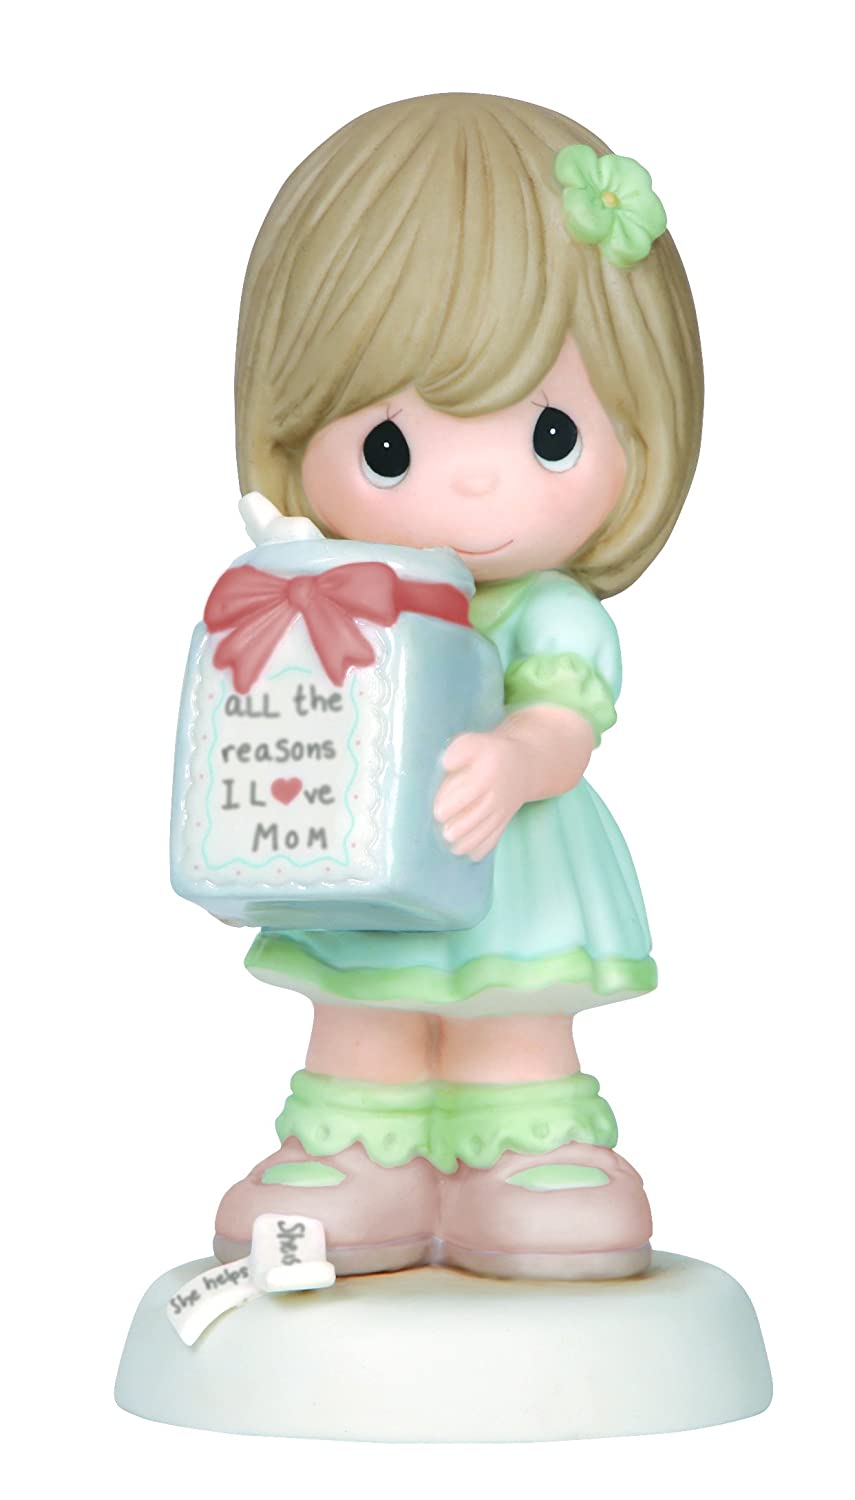 All The Reasons I Love Mom Precious Moments figurine best gifts for mom from a daughter